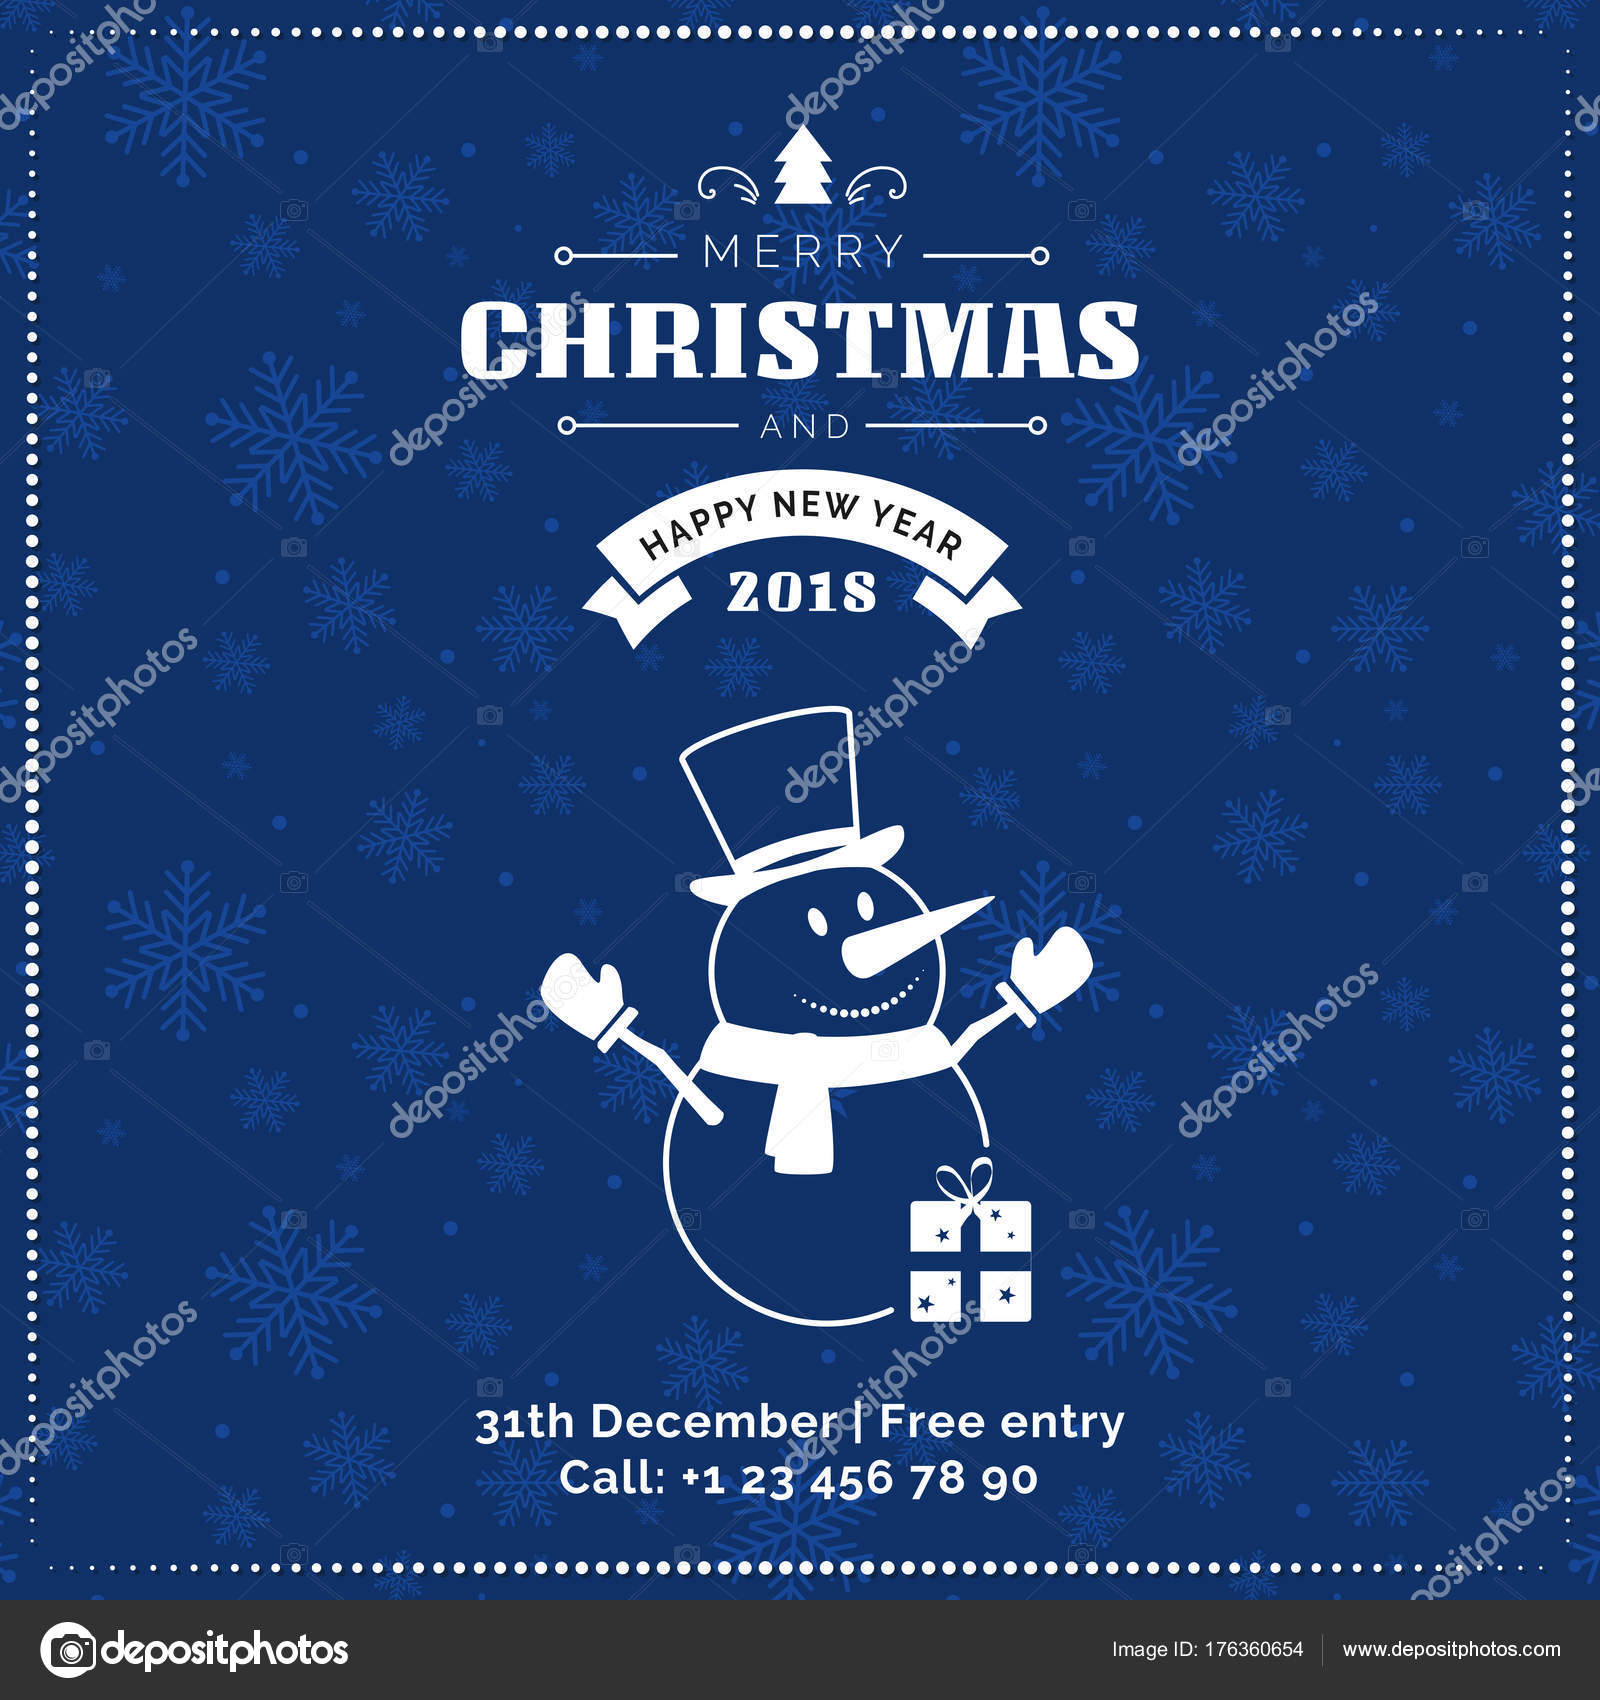 Merry Christmas And Happy New Year Greeting Card Poster Banner